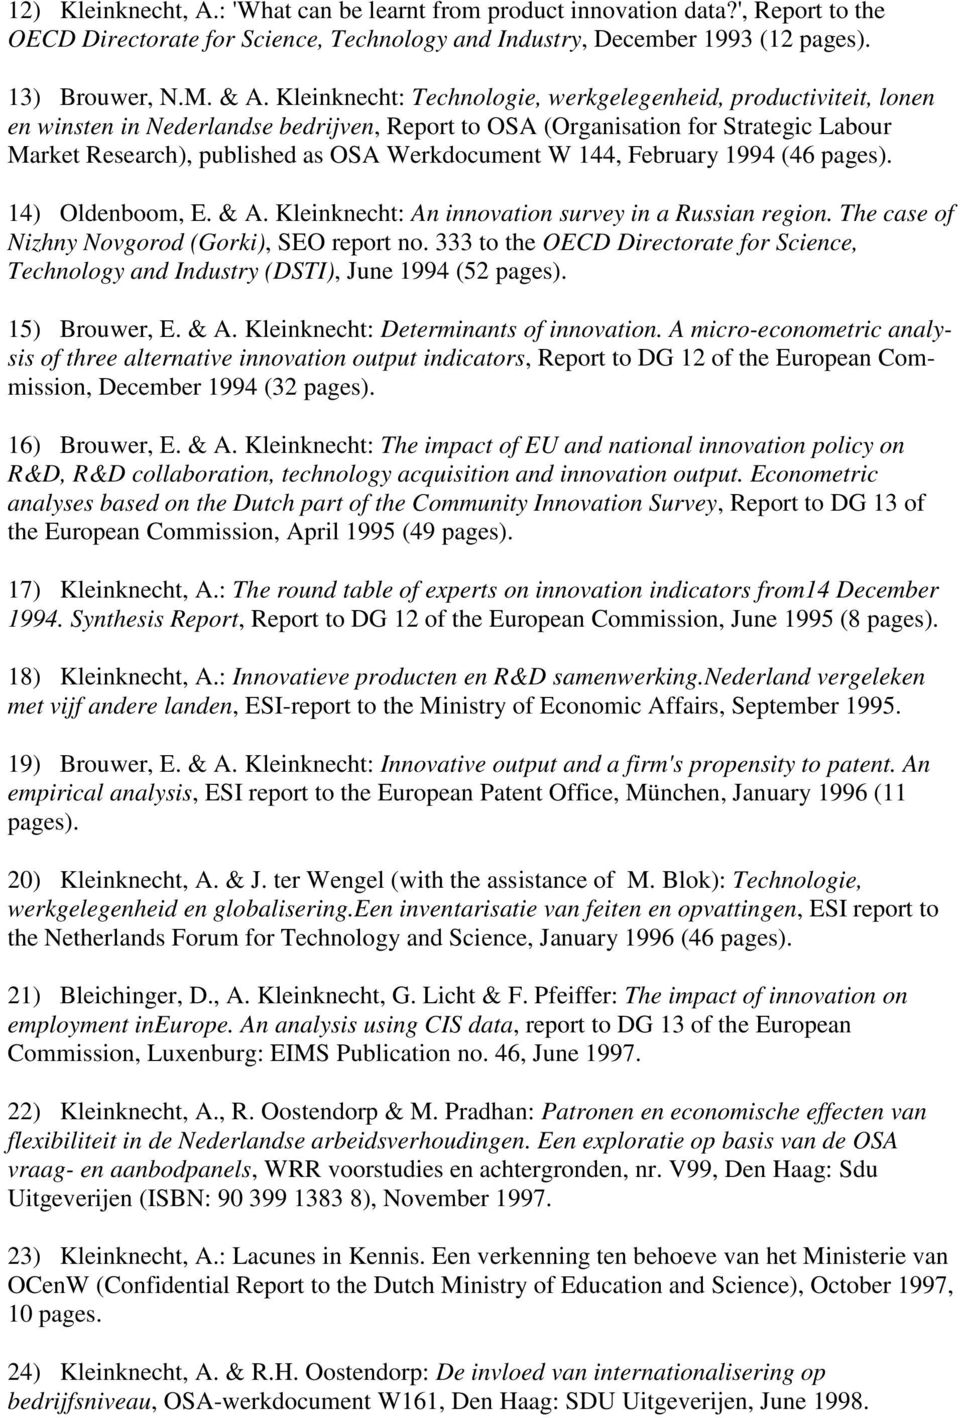 W 144, February 1994 (46 pages). 14) Oldenboom, E. & A. Kleinknecht: An innovation survey in a Russian region. The case of Nizhny Novgorod (Gorki), SEO report no.